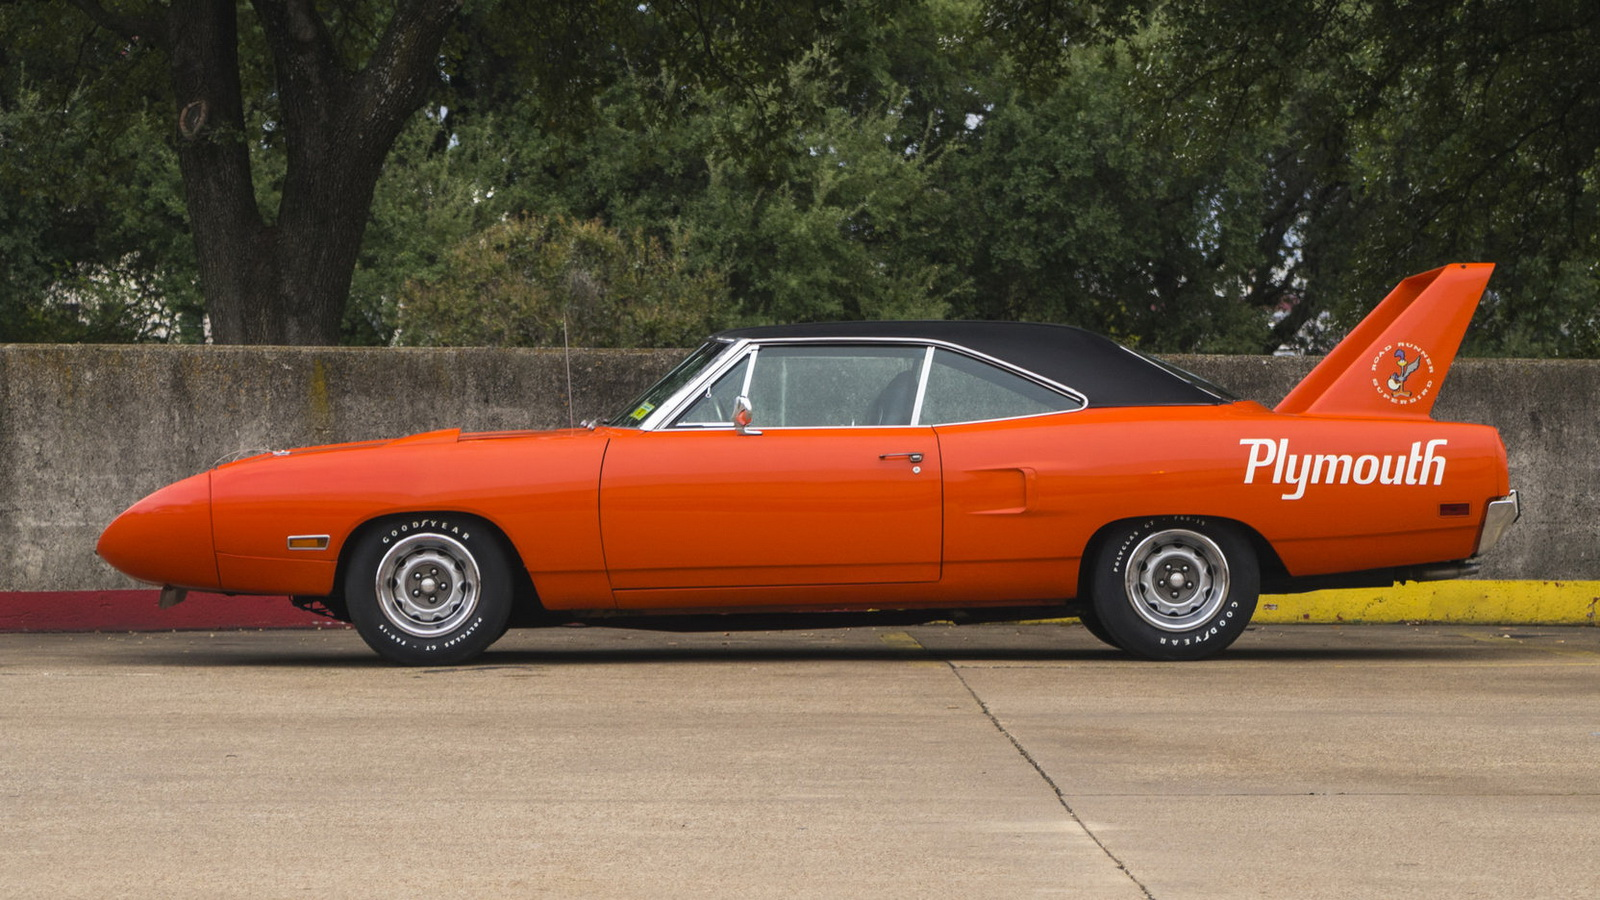 Plymouth Hemi Superbird 1970 in auction (2)